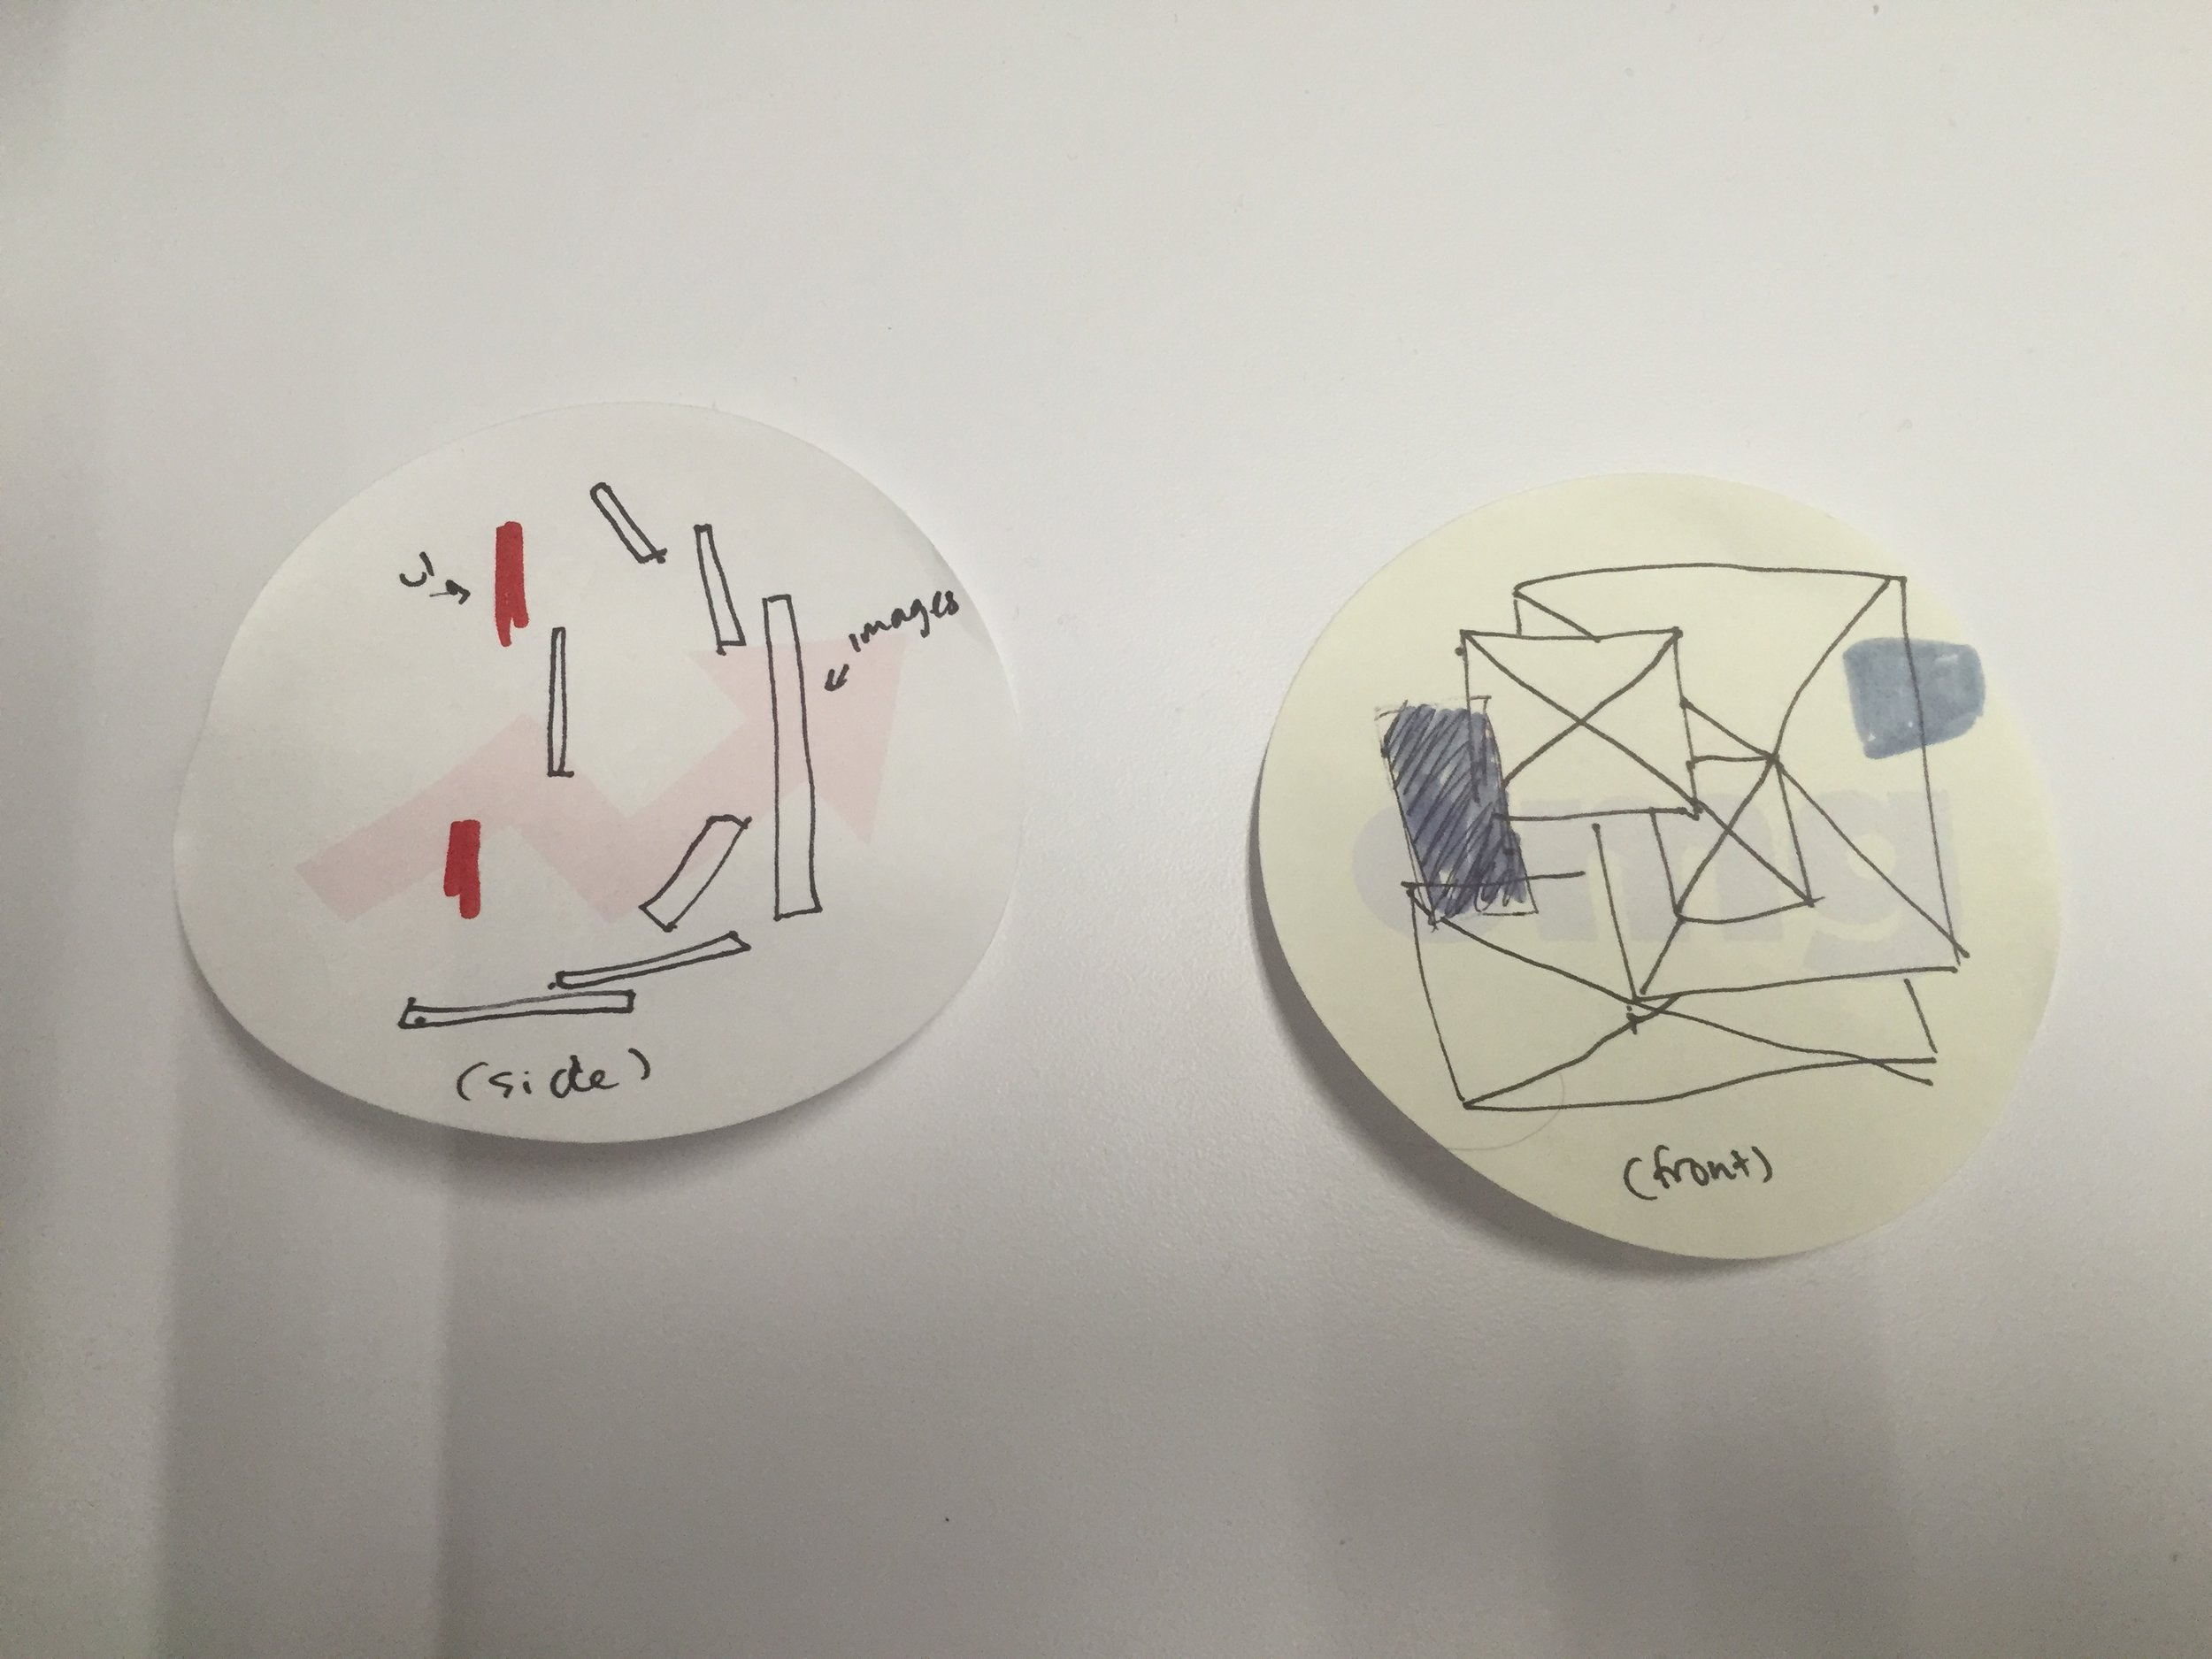 Prototype Image, so the images are layered at different degrees to create a 3-D because they are layered in a 3-D way.